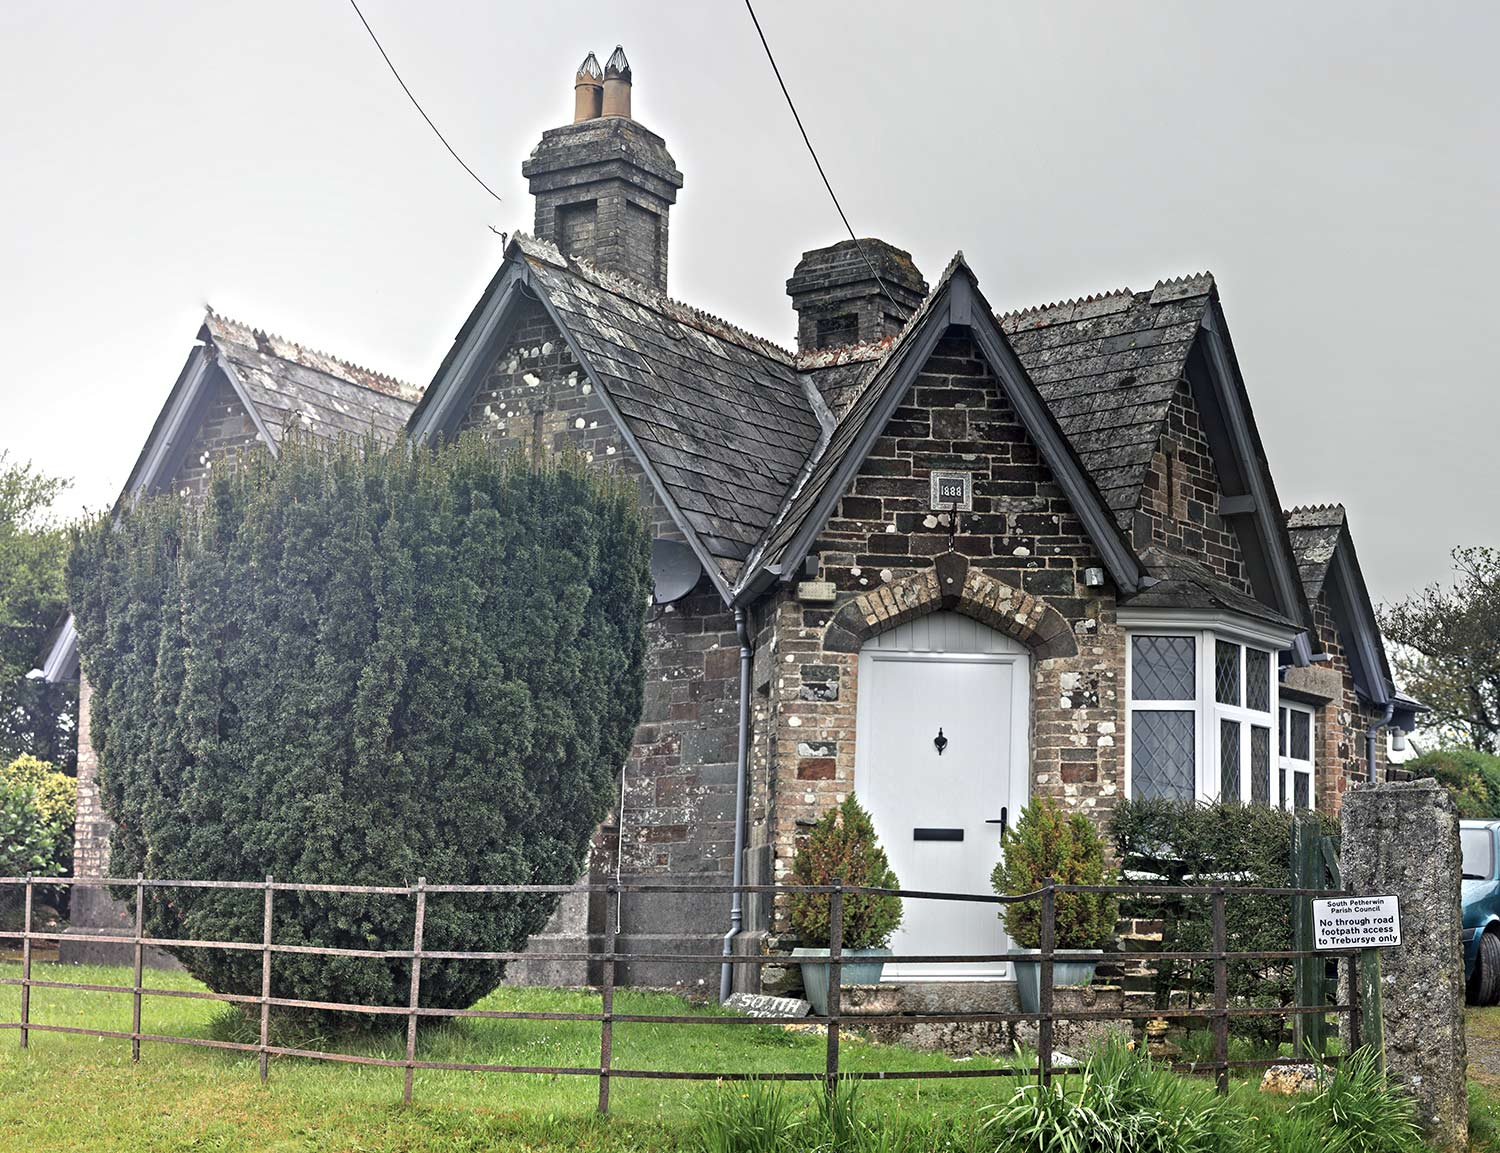 Trebursye South Lodge in May 2016.